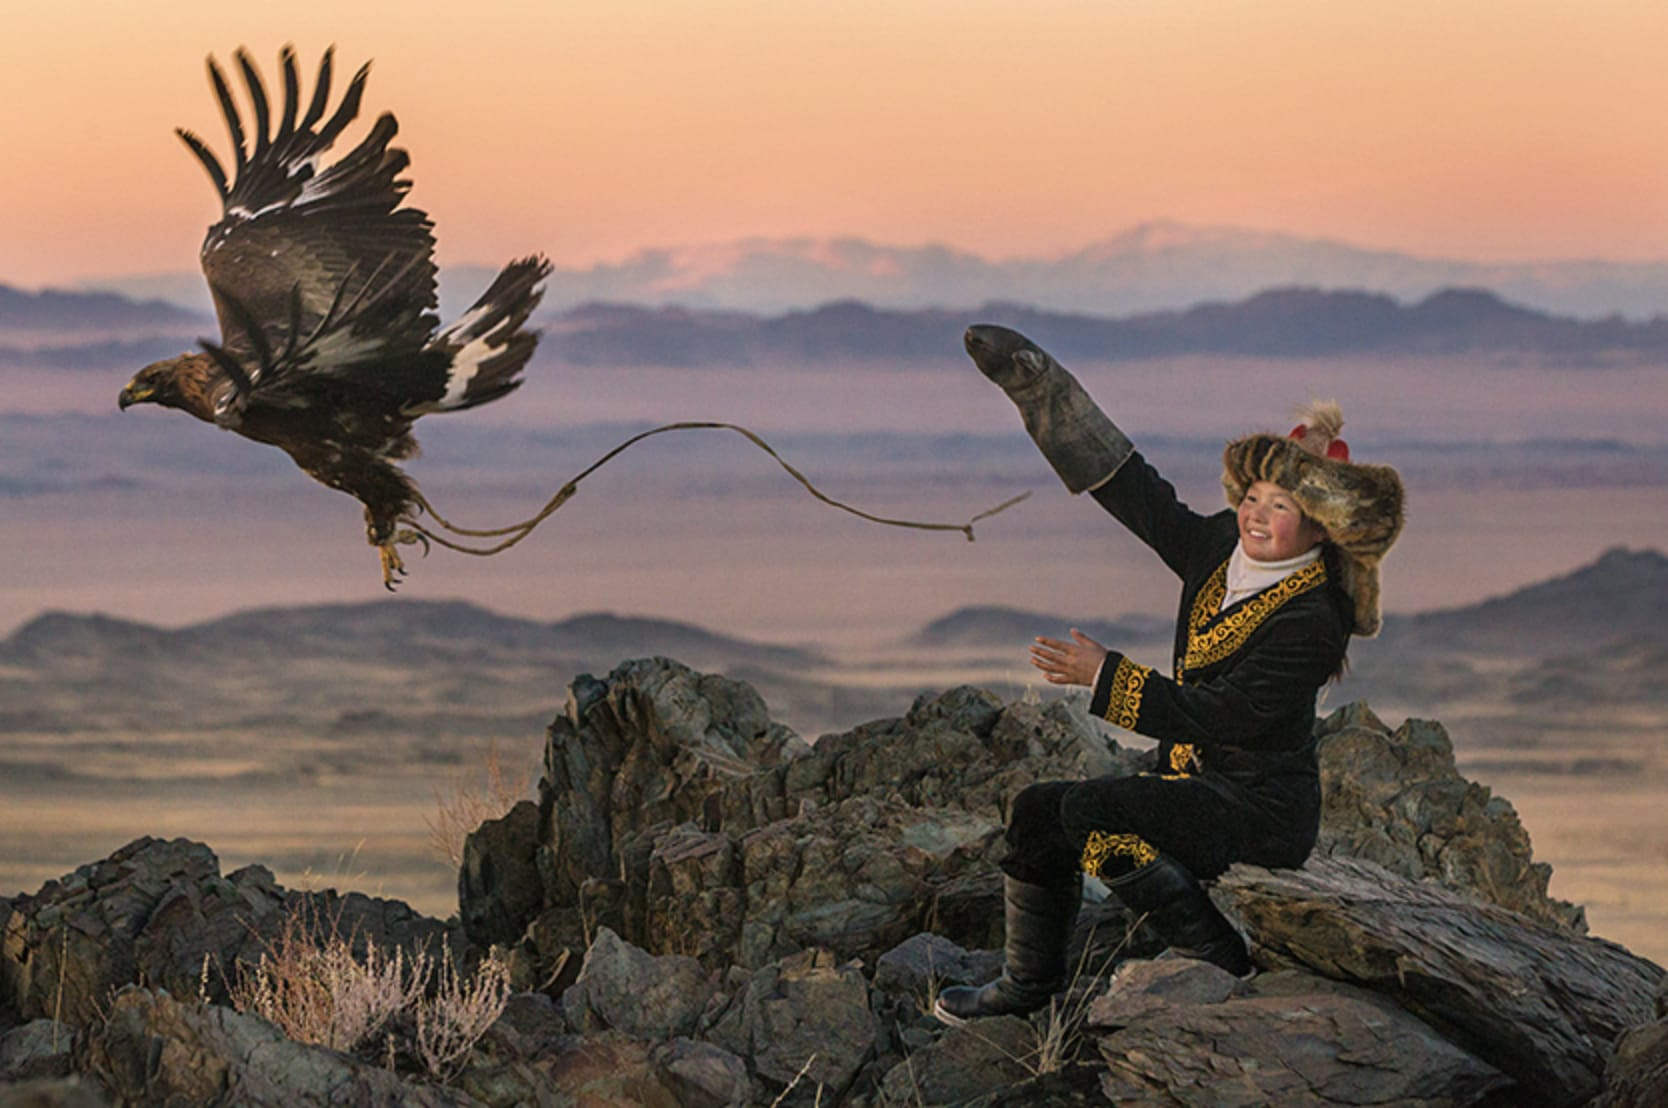 Eagle Huntress with an arm outstretched and an eagle flying away.